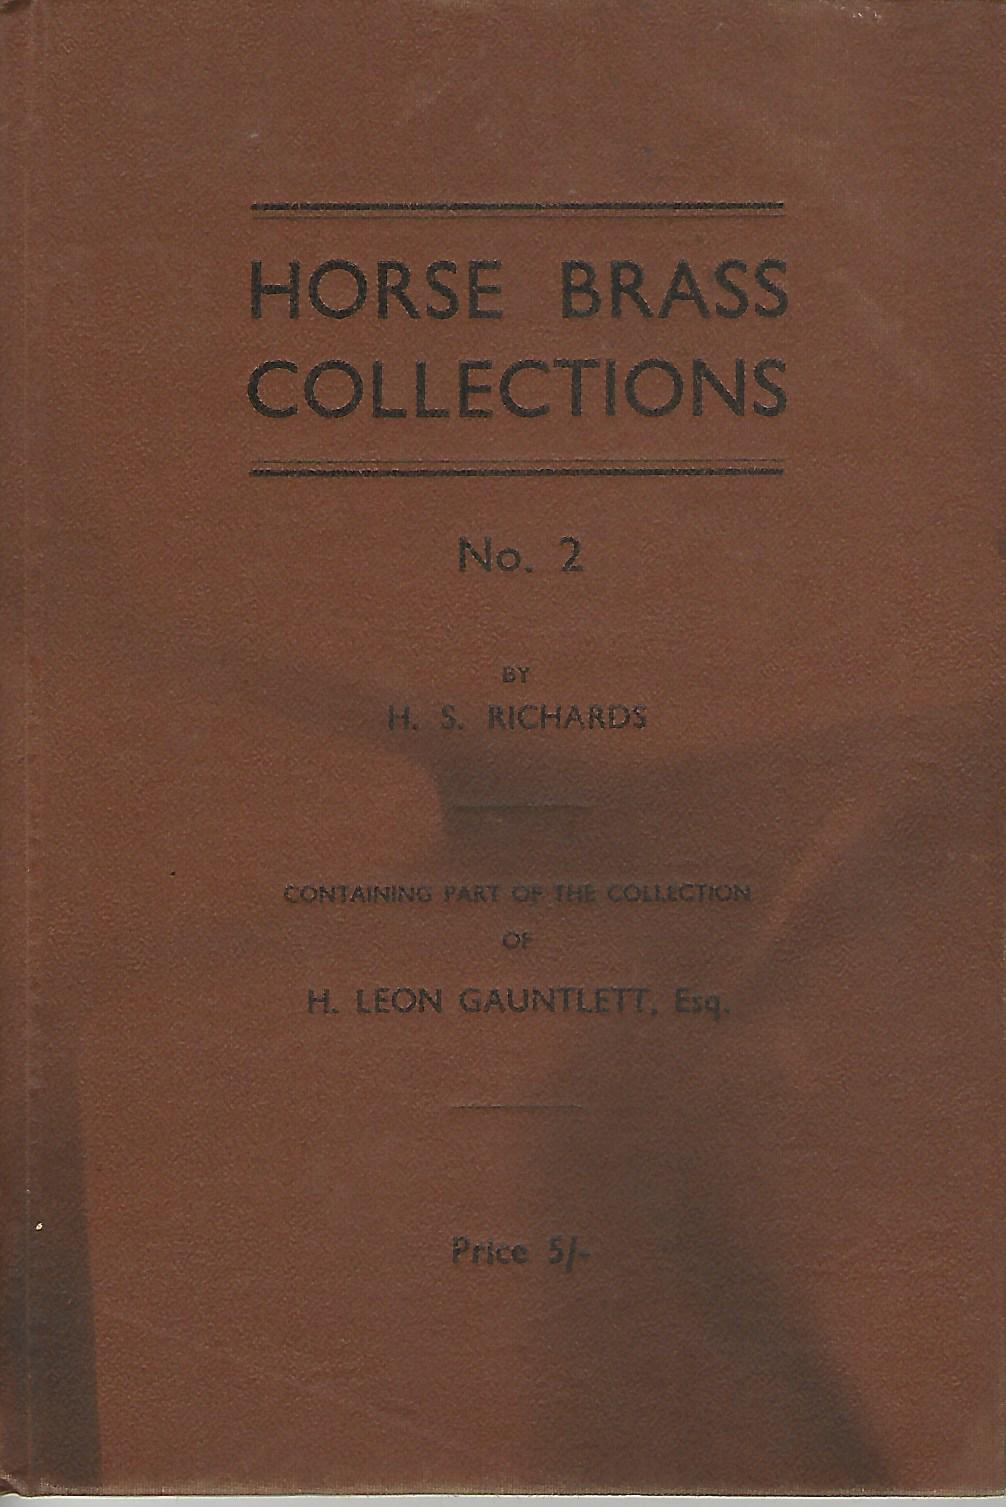 Image for Horse Brass Collections: Number 2.